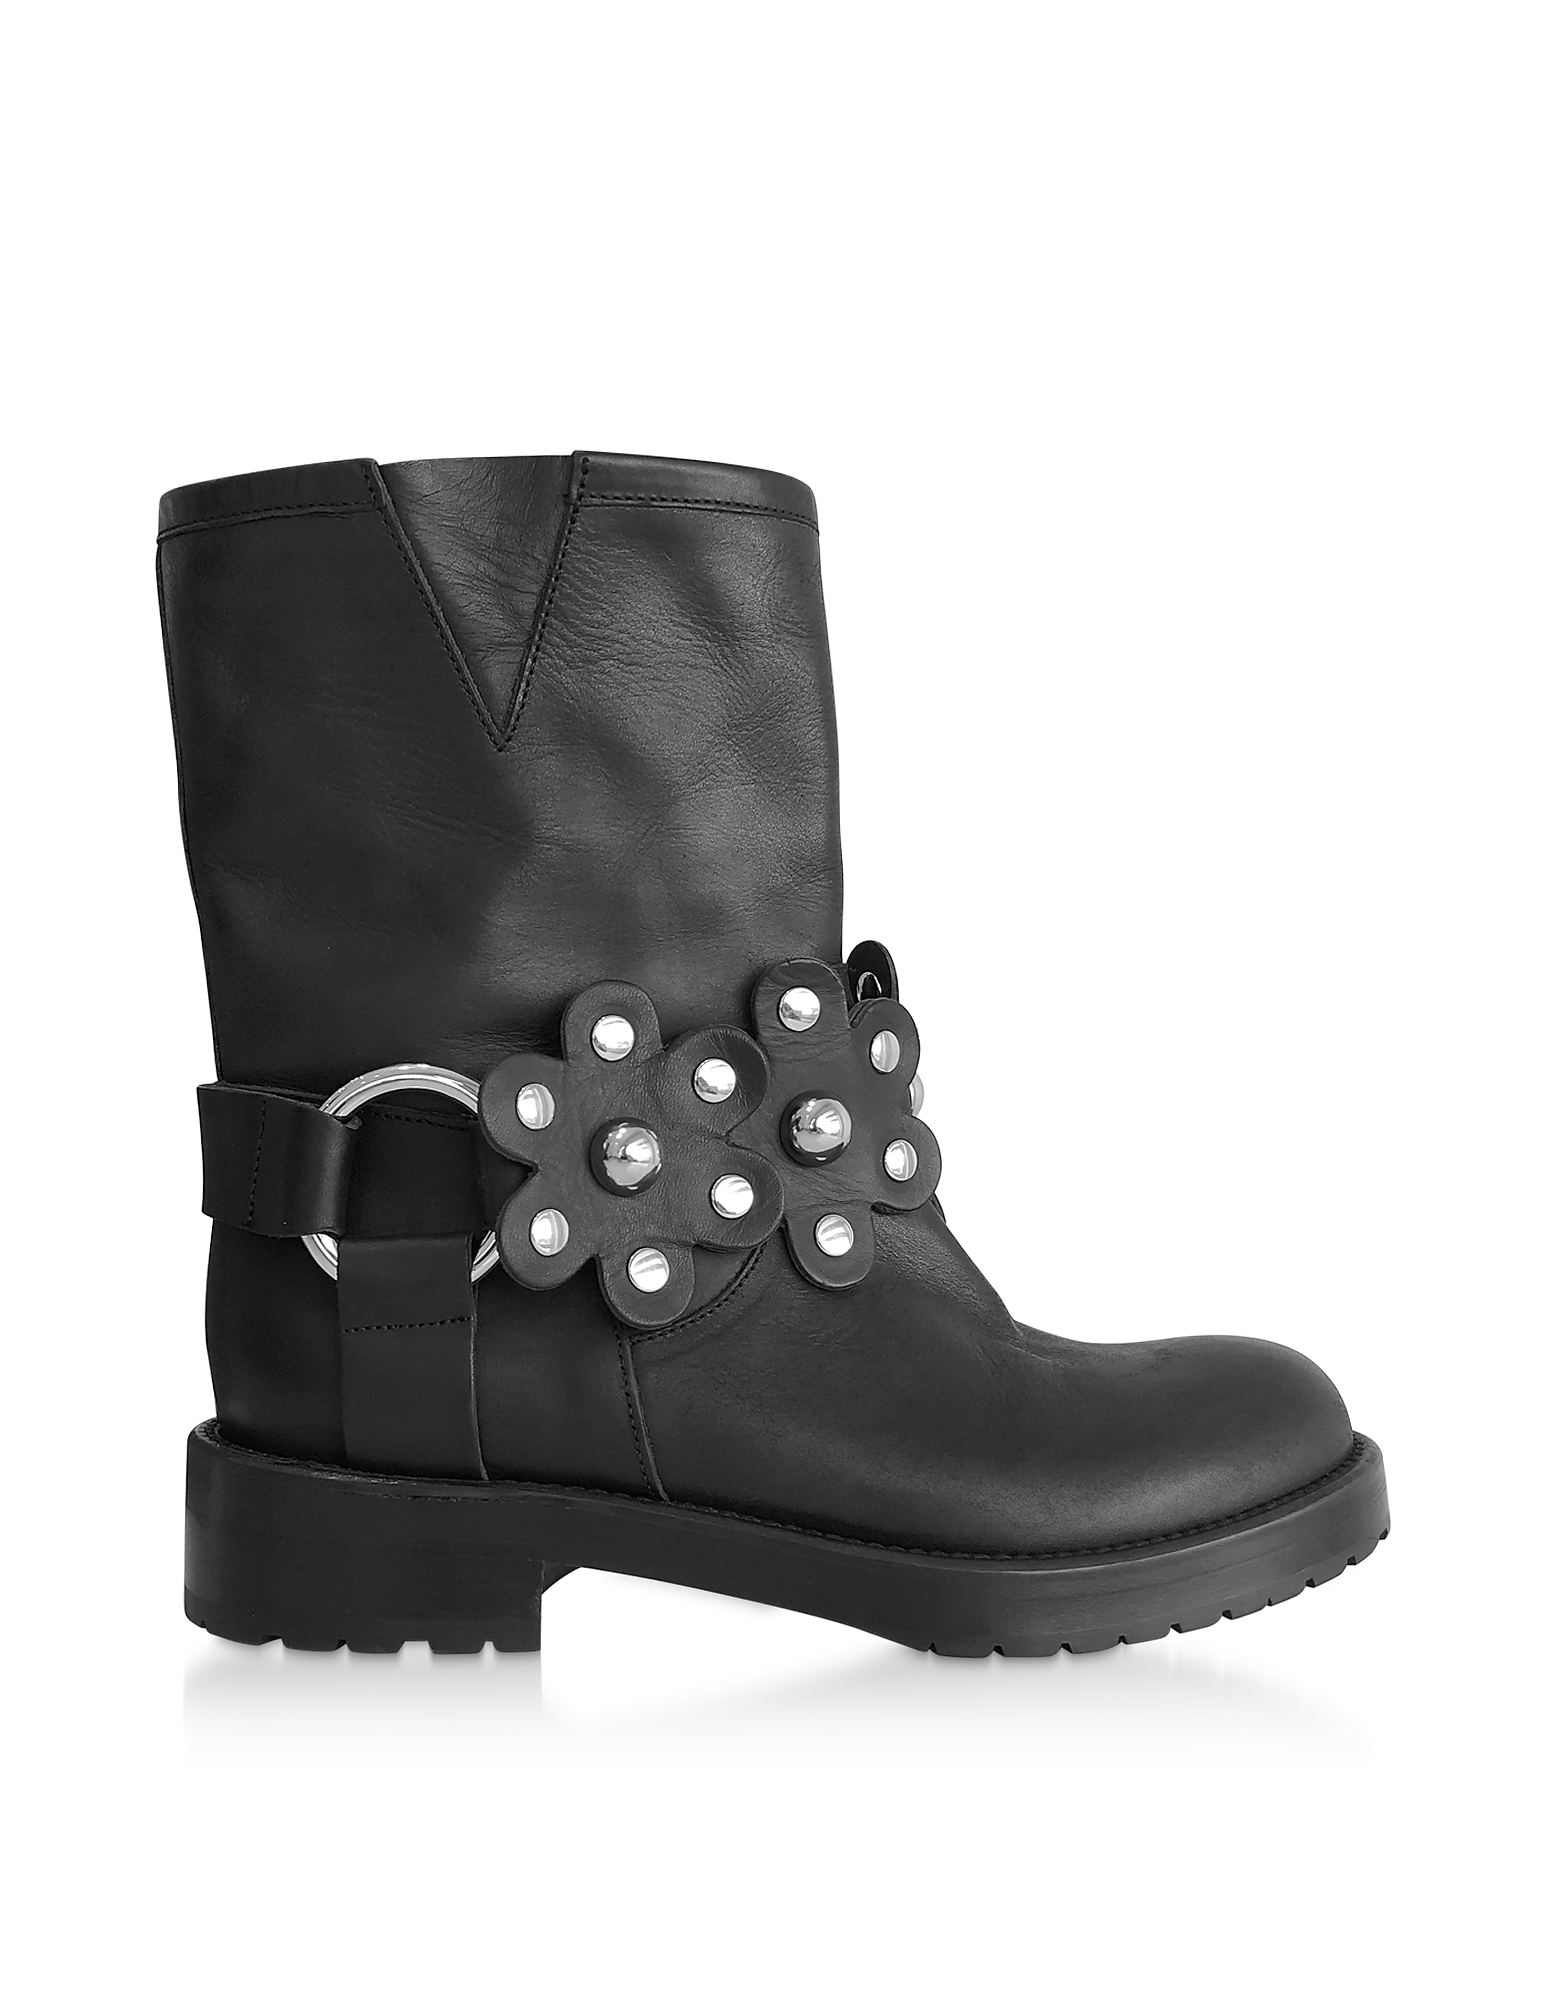 RED Valentino Designer Shoes, Black Leather Studded Biker Boots